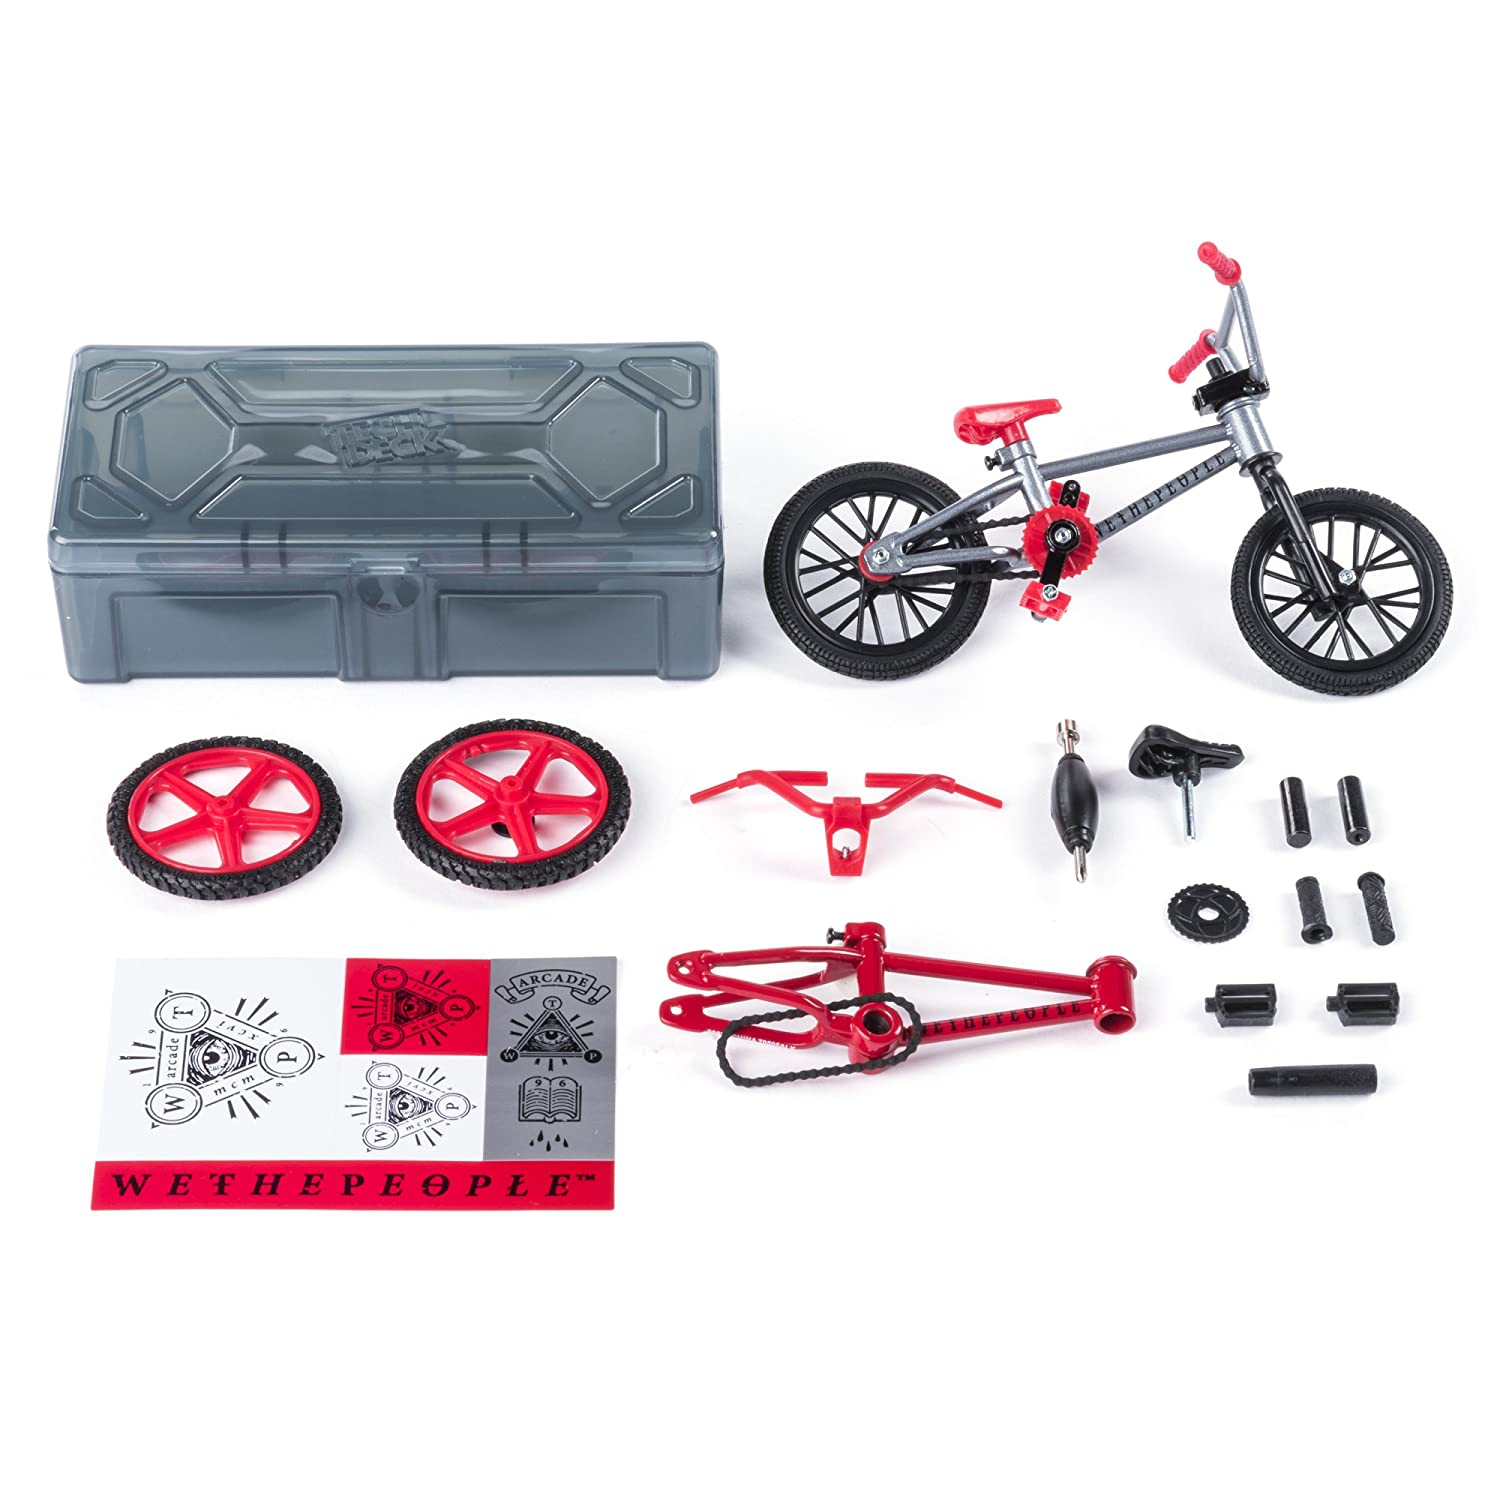 Tech Deck – BMX Bike Shop with Accessories and Storage Container – WeThePeople Bikes – Silver Red